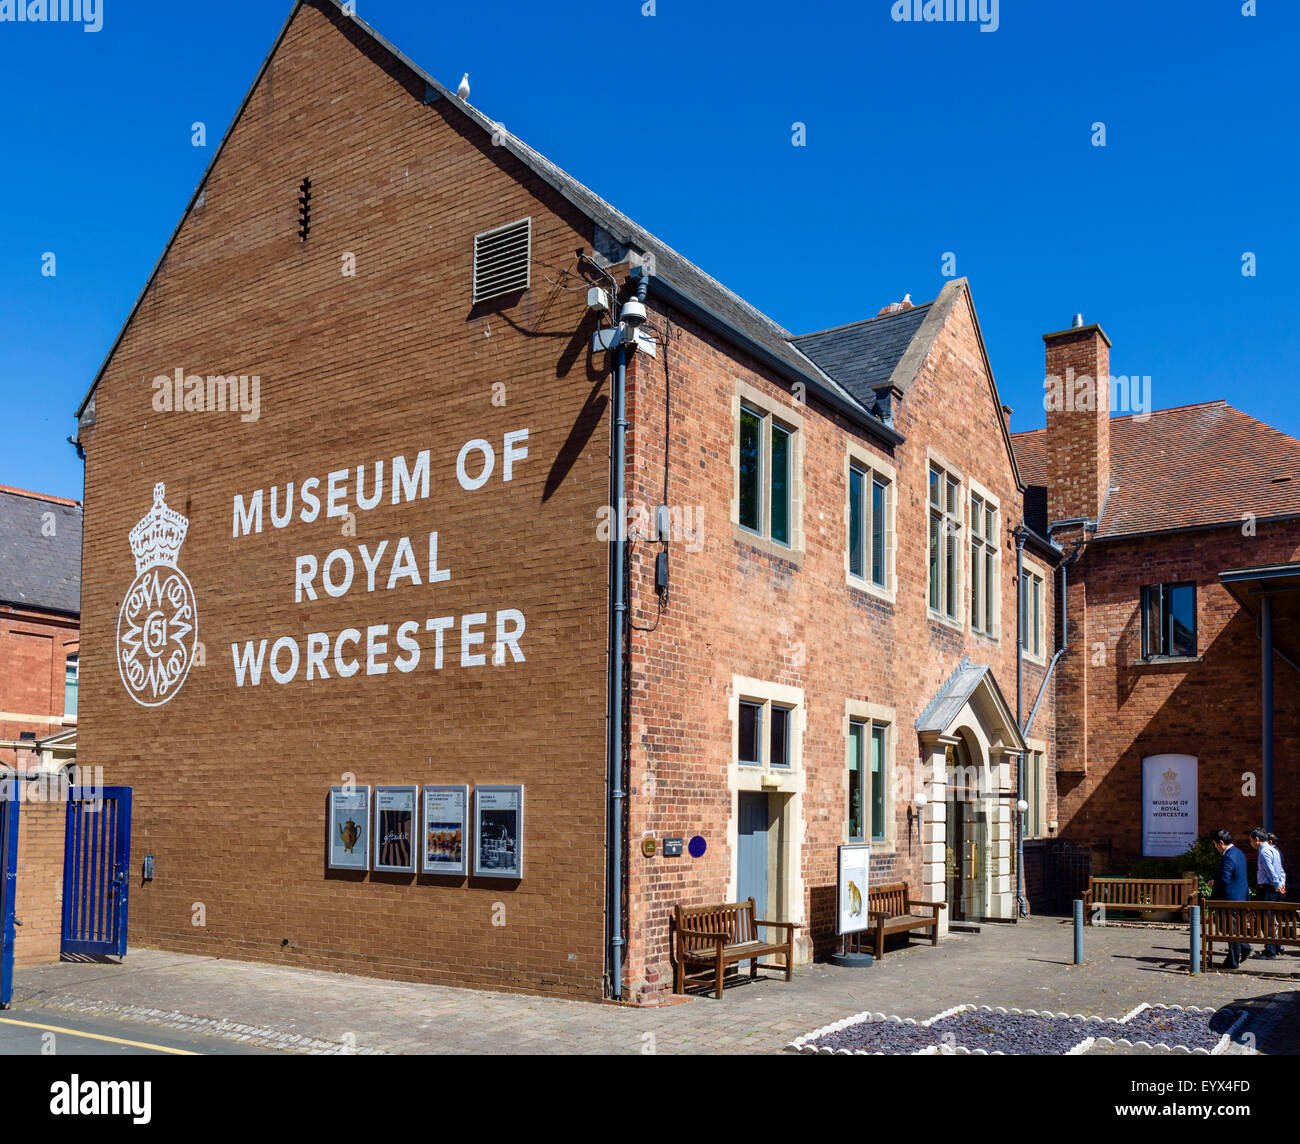 Royal Worcester Factory Stock Photos & Royal Worcester Factory Stock ...